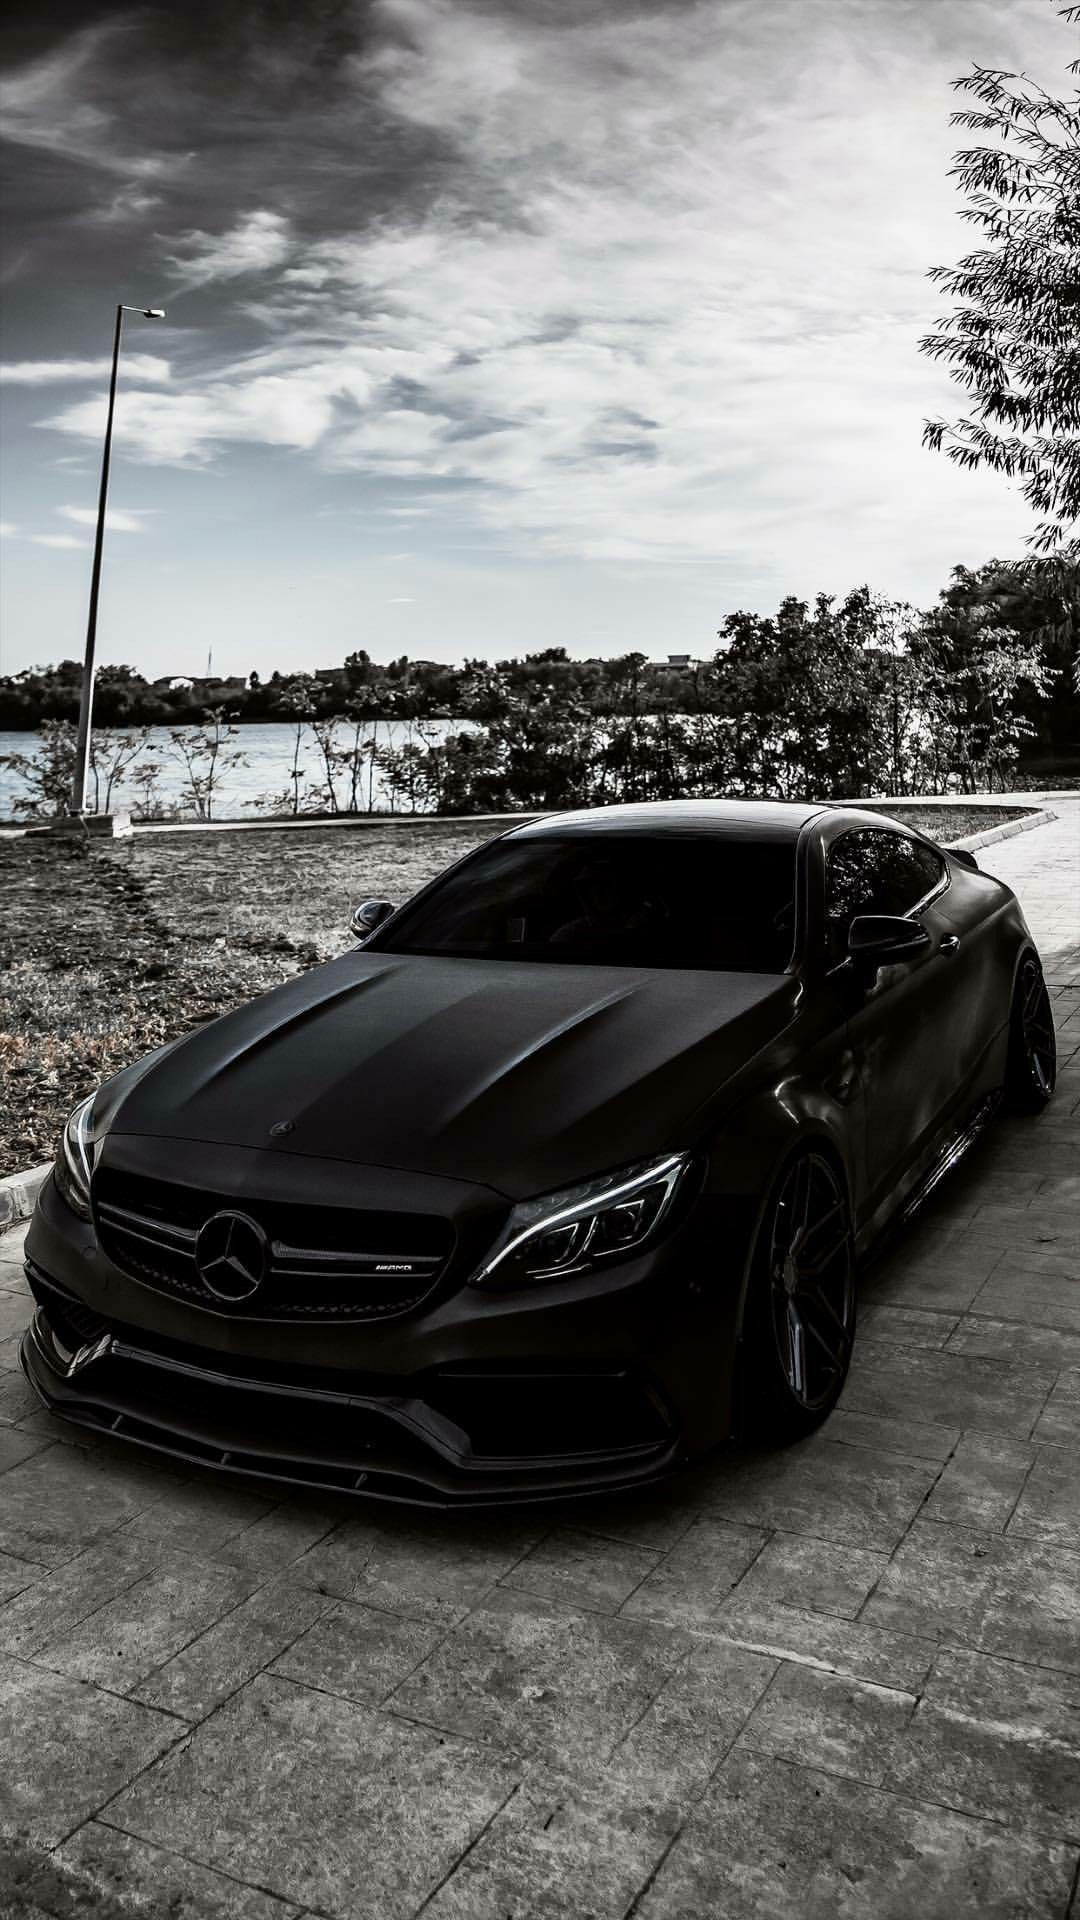 While we receive compensation when you click links to. Best Wallpaper Car Iphone X Today